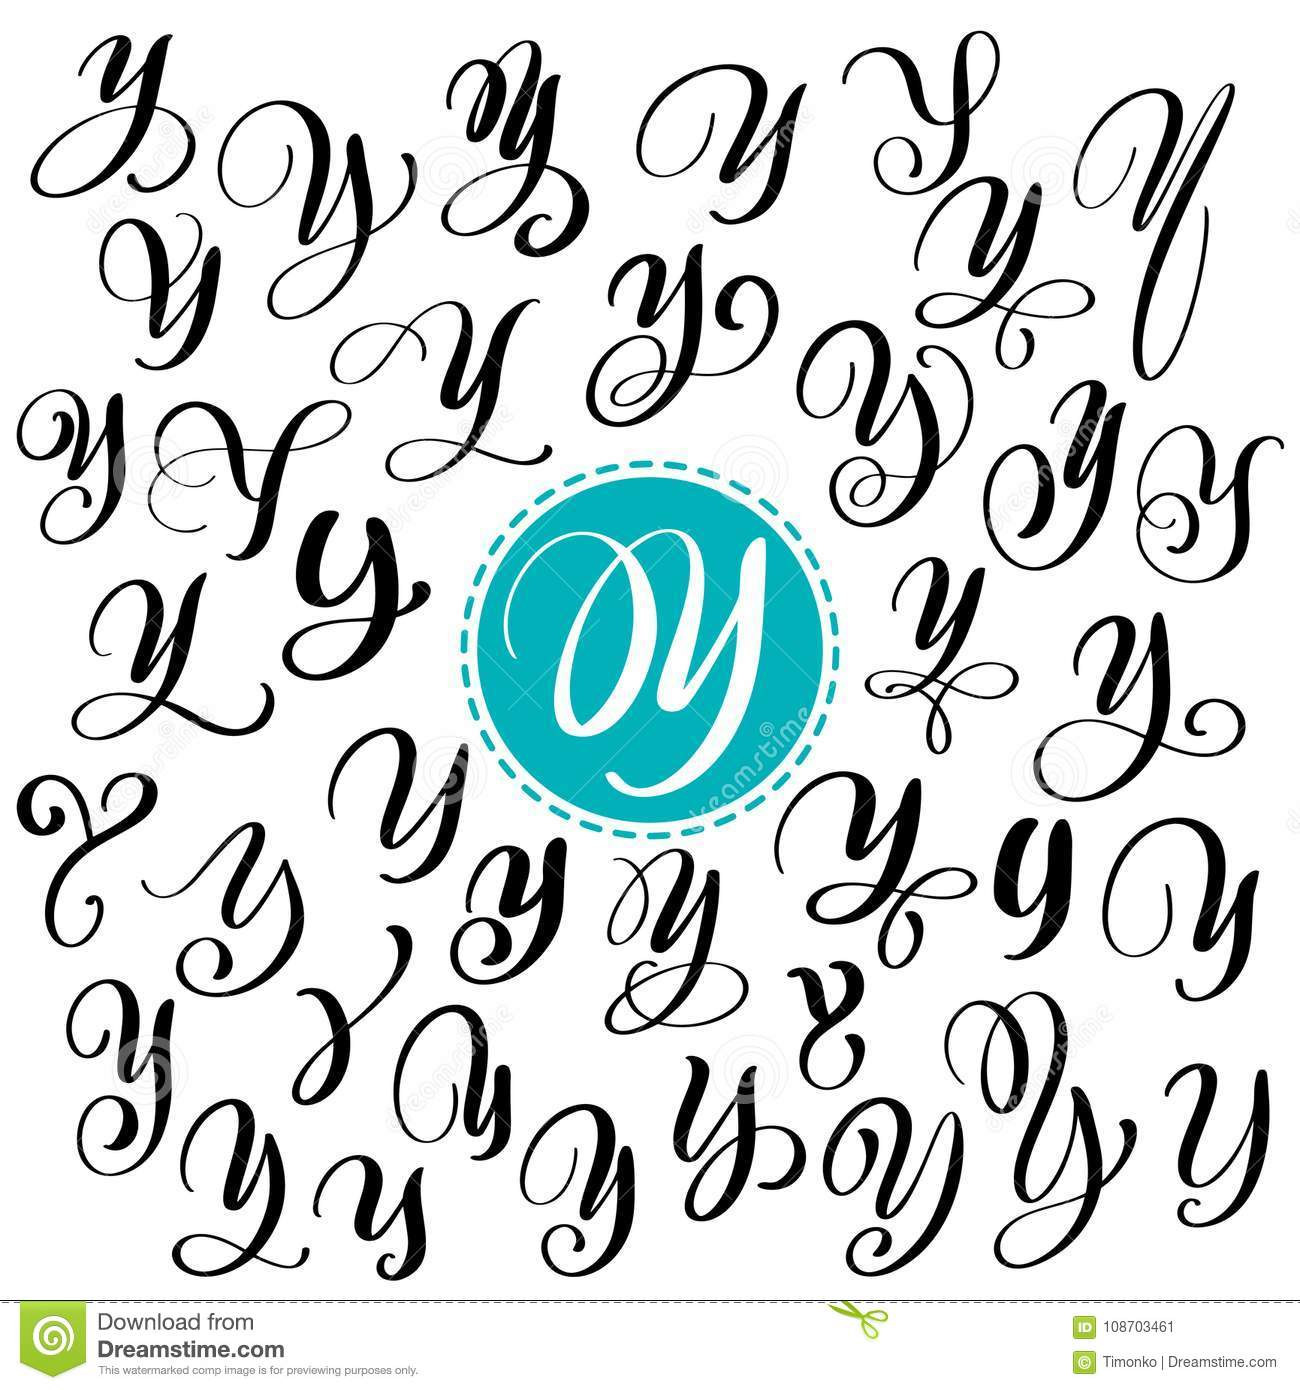 Set of Hand drawn vector calligraphy letter Y. Script font. Isolated letters written with ink. Handwritten brush style